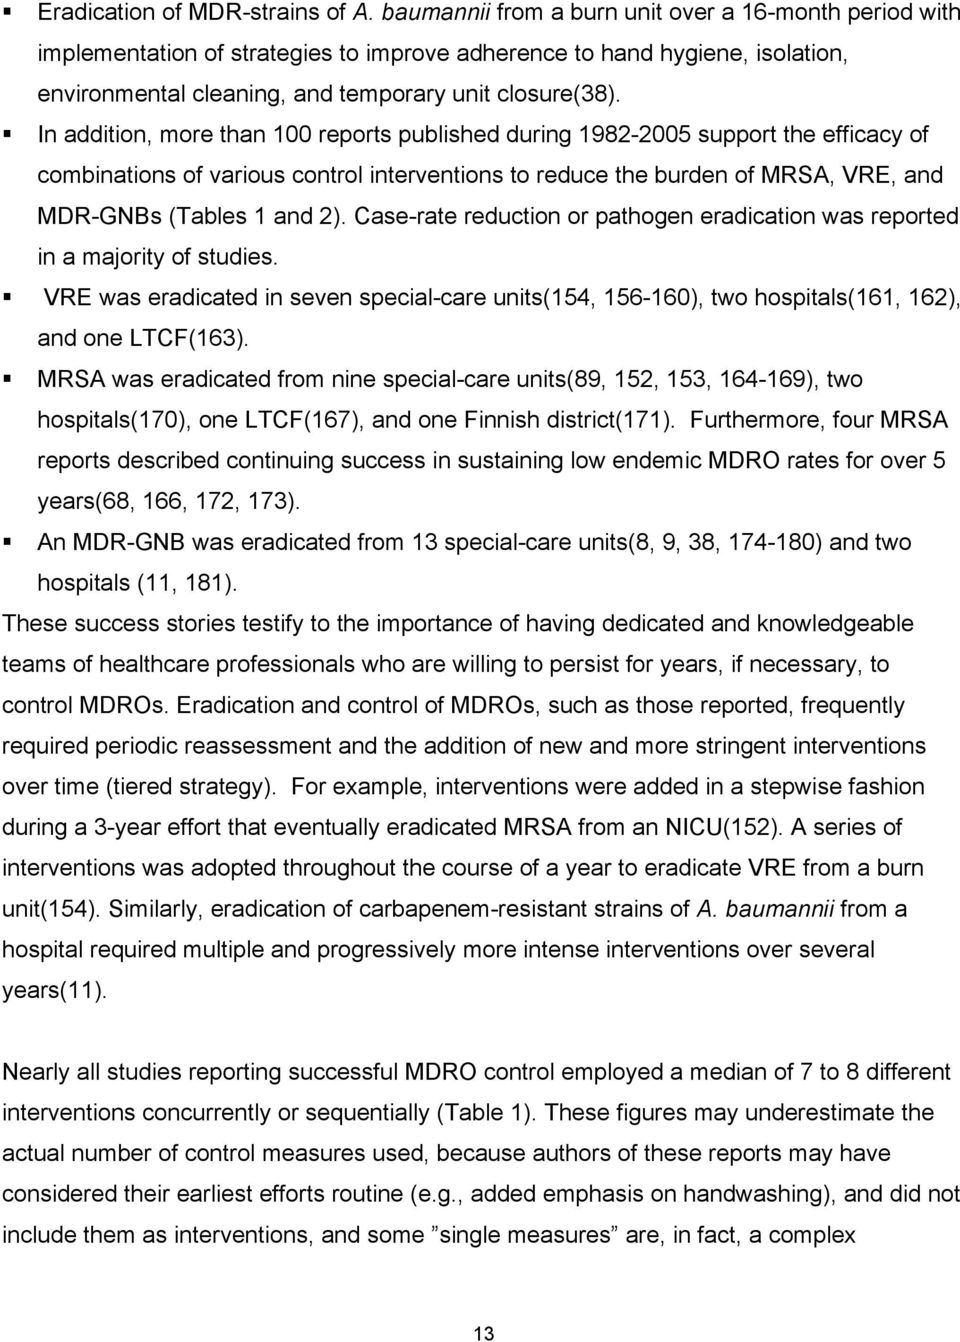 In addition, more than 100 reports published during 1982-2005 support the efficacy of combinations of various control interventions to reduce the burden of MRSA, VRE, and MDR-GNBs (Tables 1 and 2).